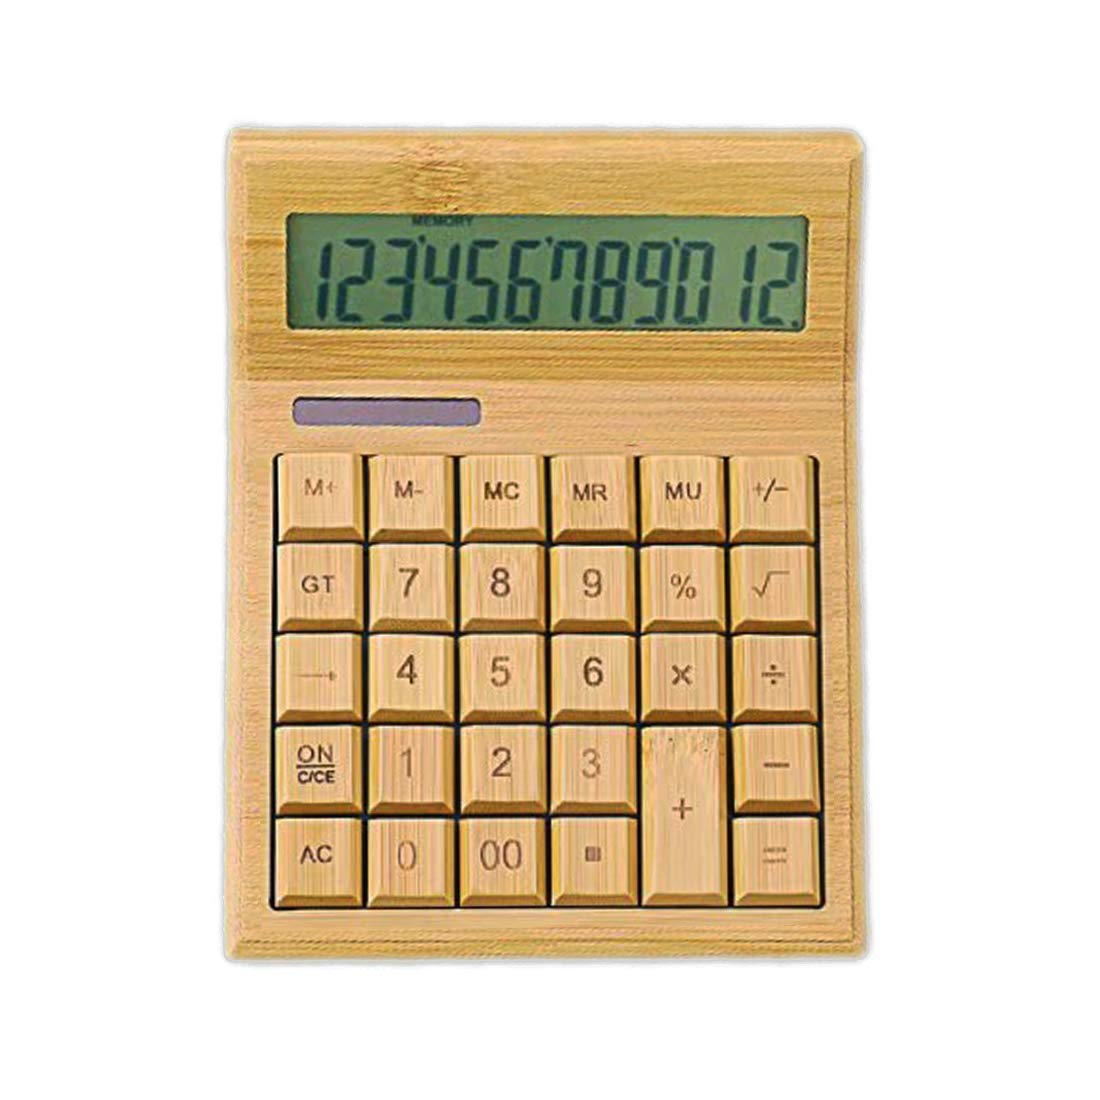 Omio Natural Bamboo Calculator Multifunctional Wood Solar Power Calculator 12-Digit Large Display Solar & Battery Dual Powered Environment Friendly Wooden Calculator for Home Office School Store by Omio